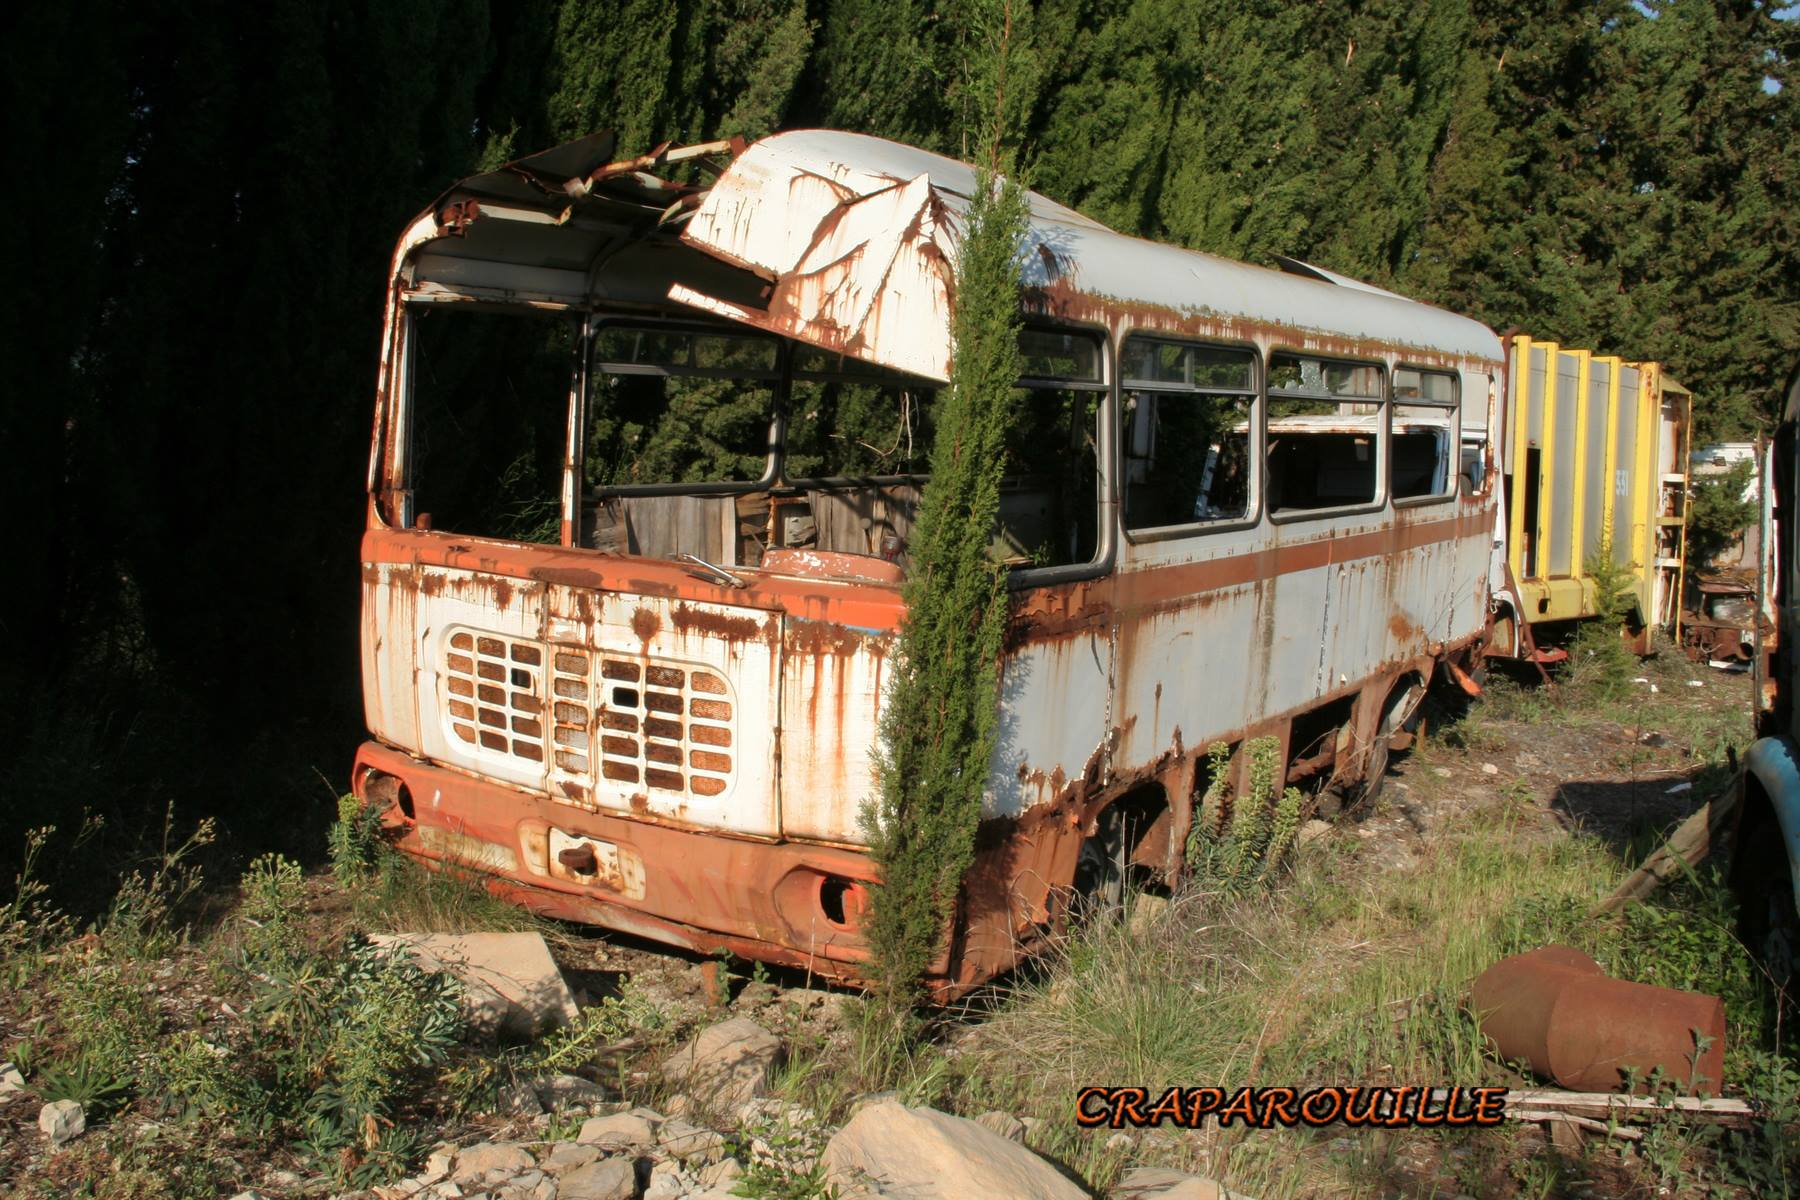 Photography-Diamonds-in-Rust-Craparouille-148